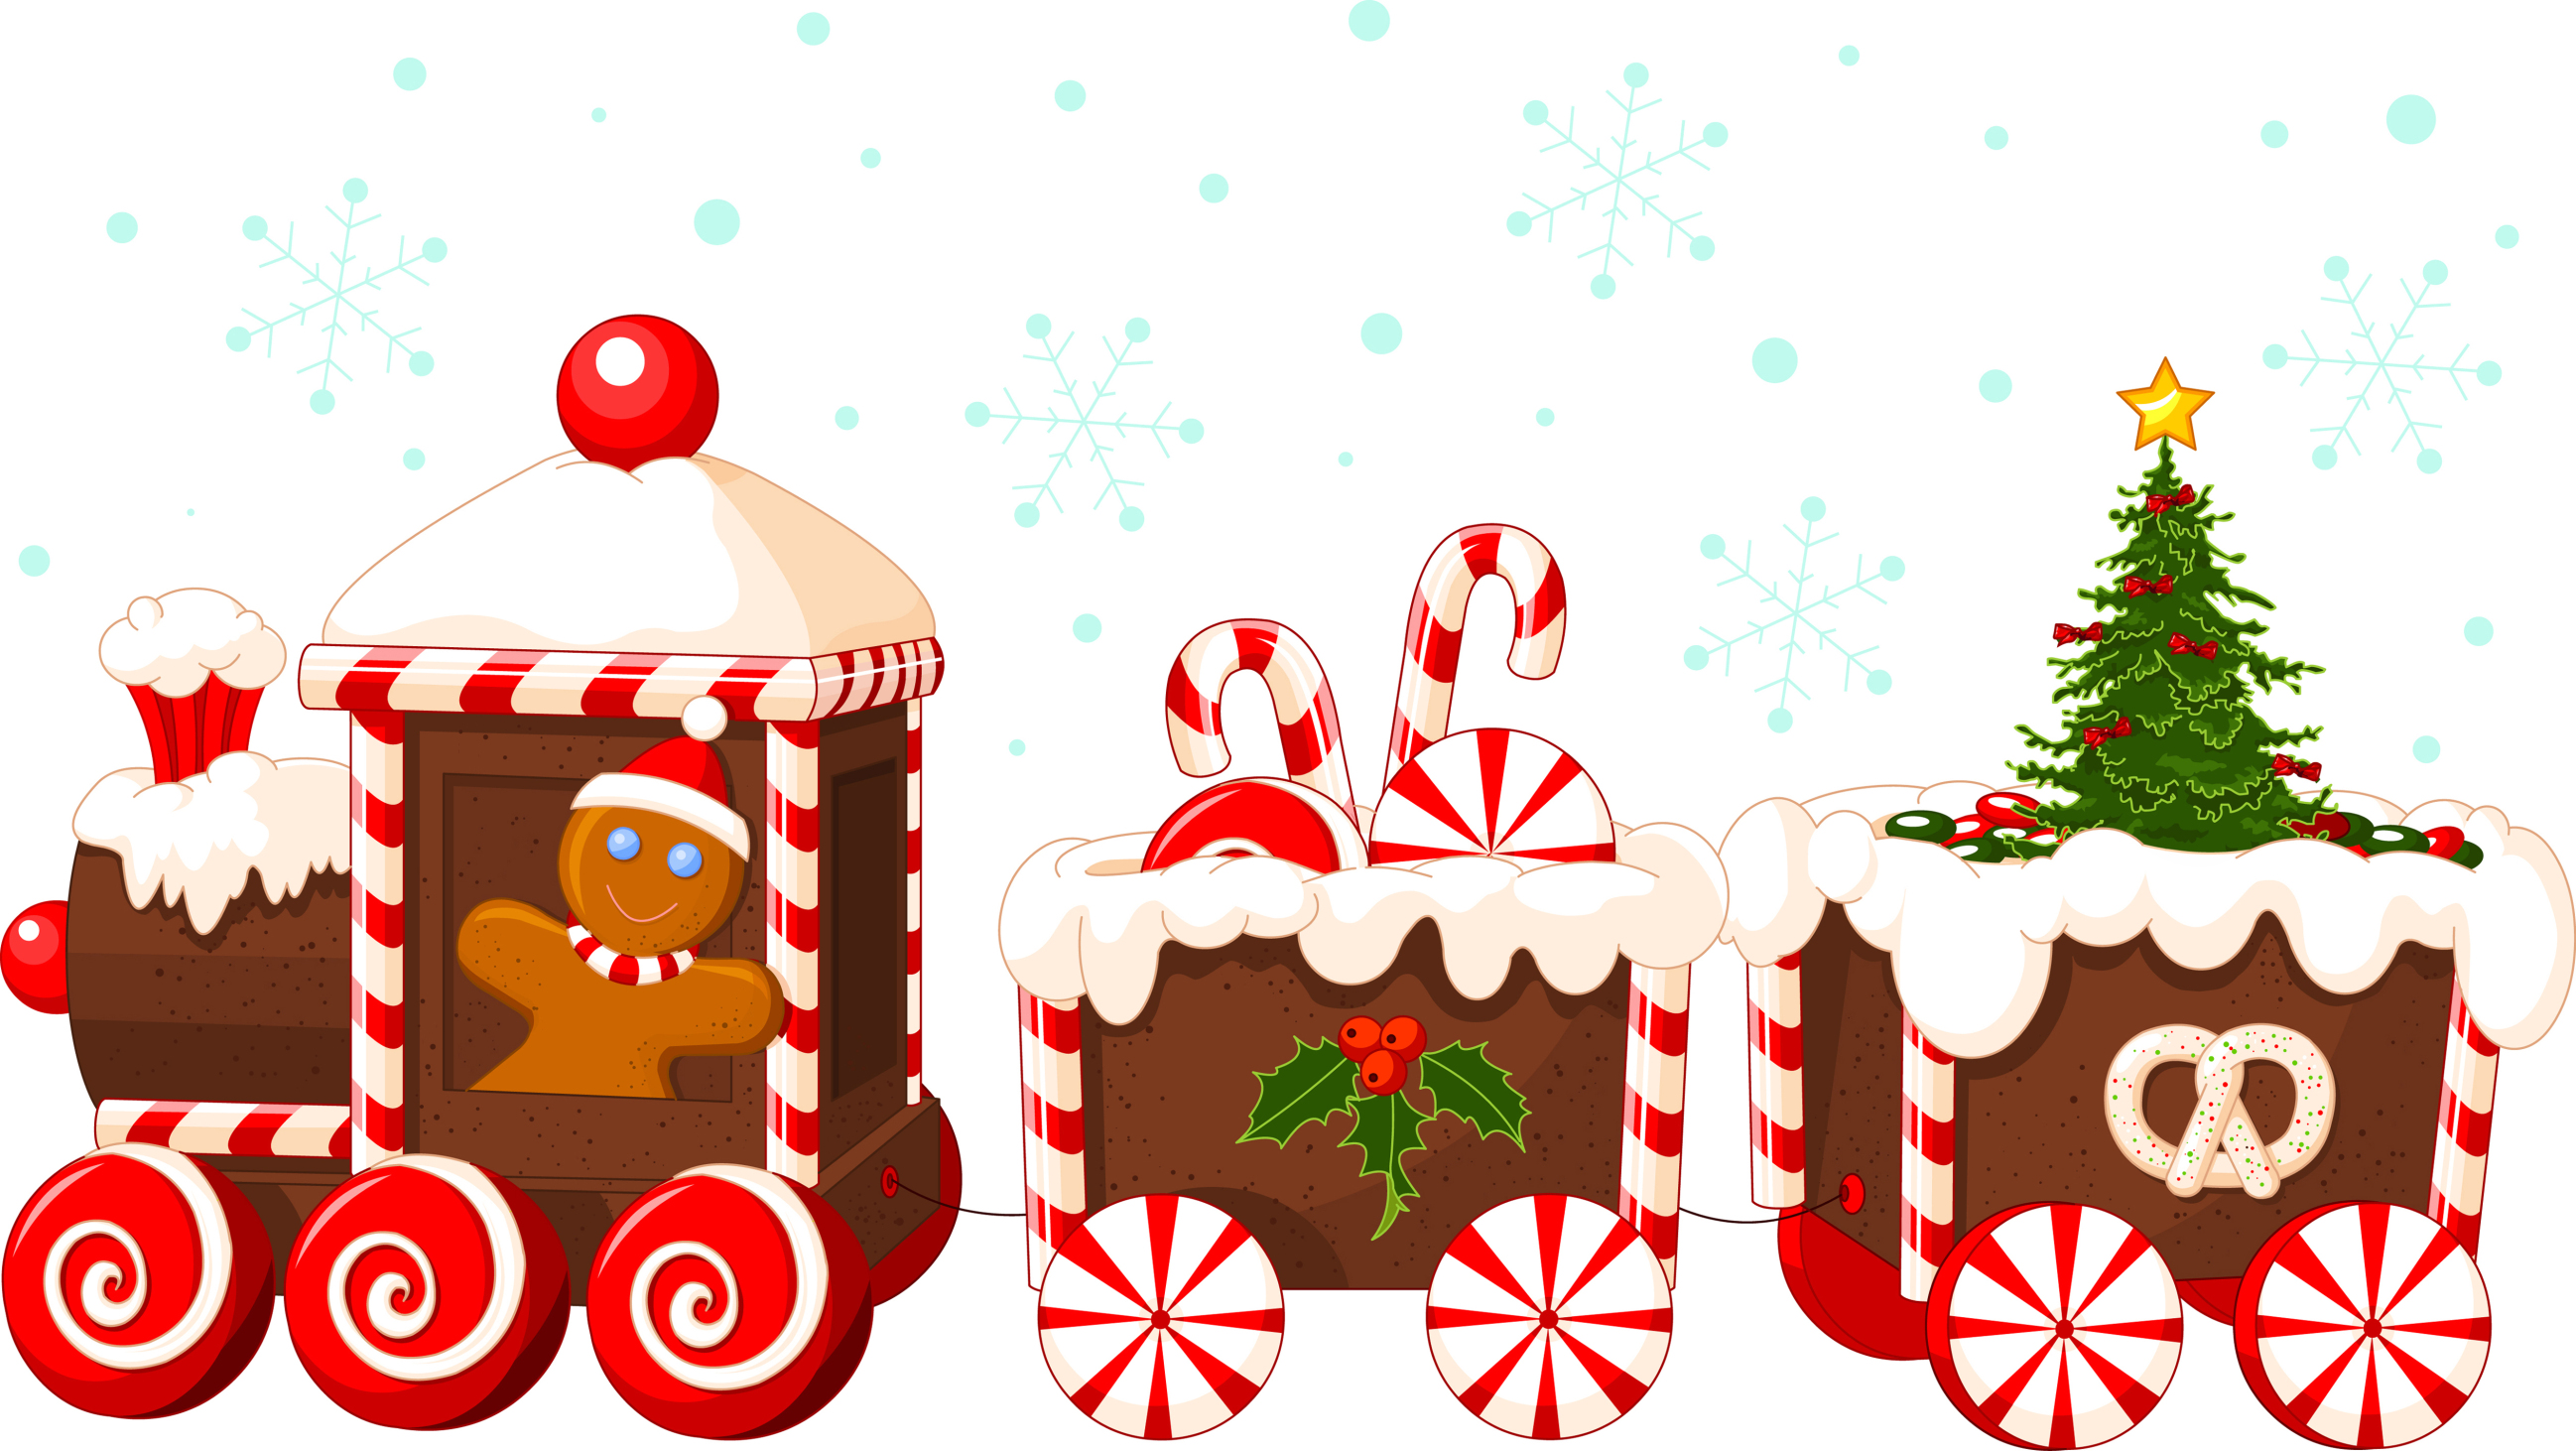 mapping apps with 14 Free Holiday Projects 3 on Turfloop as well 14 Free Holiday Projects 3 together with ment 55015 as well Paws kettering likewise 213987cc.